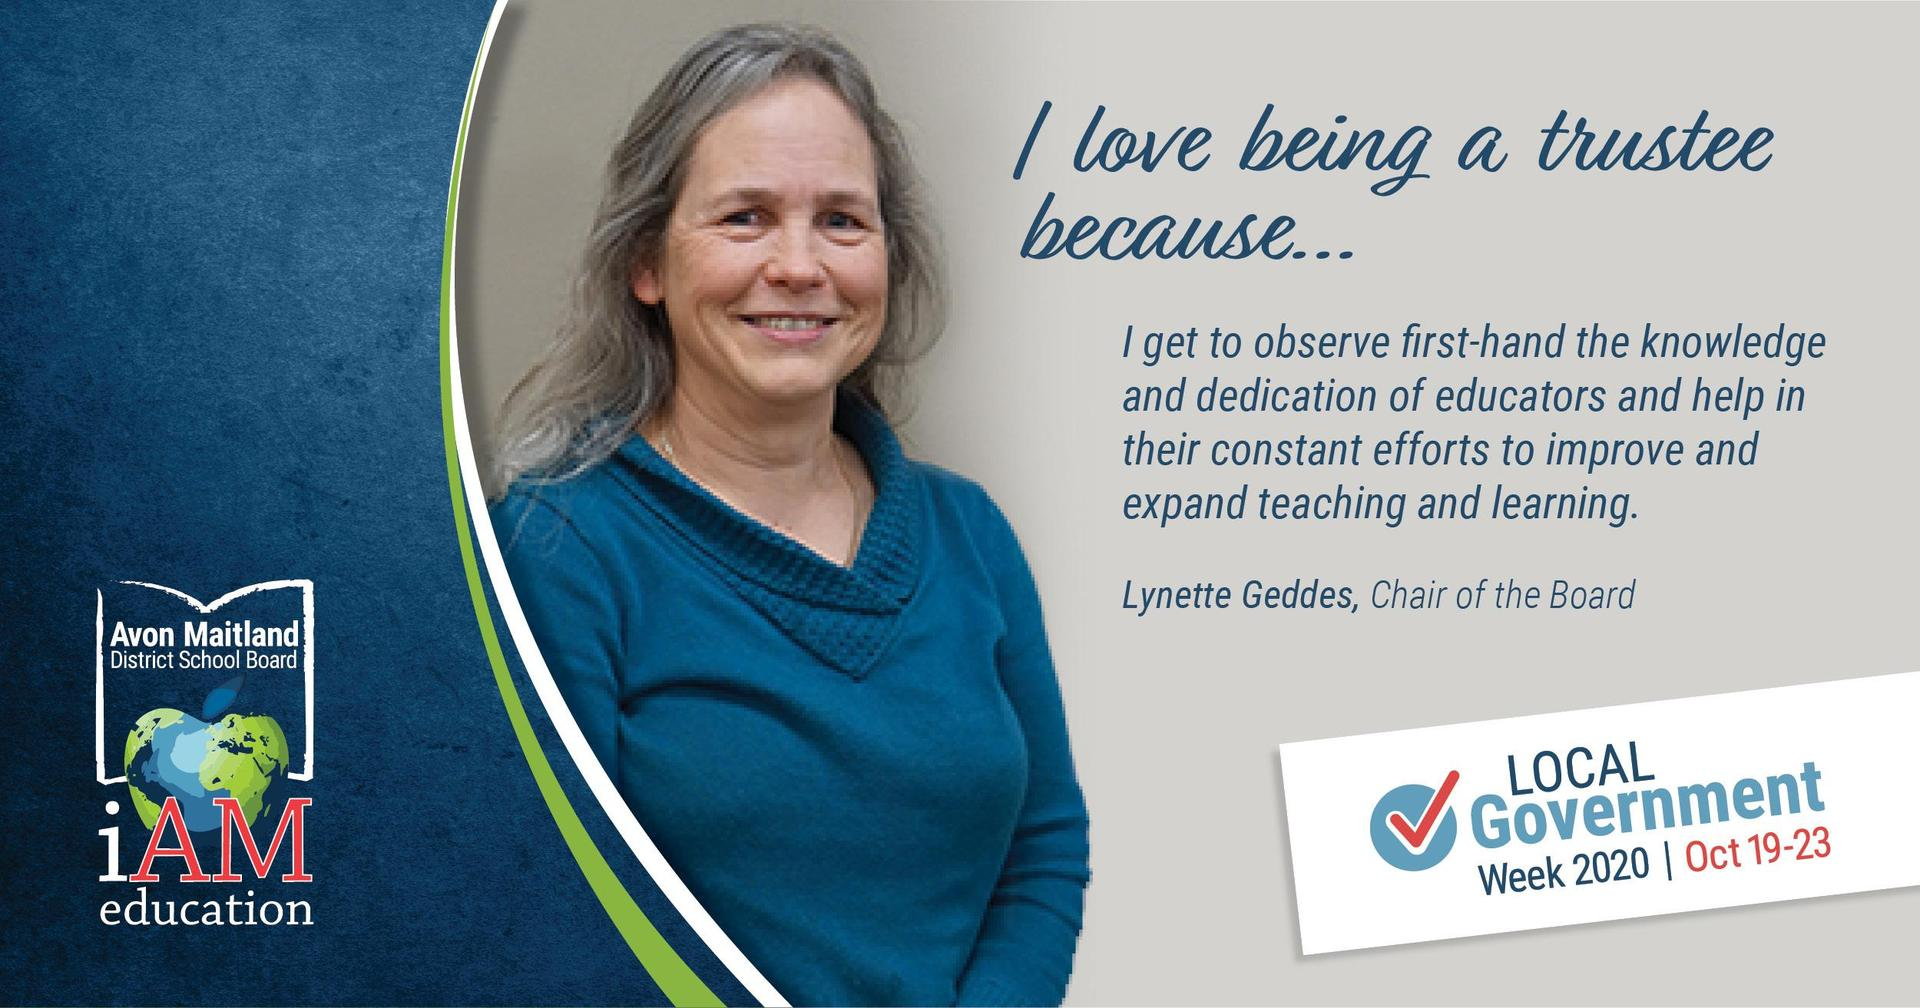 "Image of trustee and board Chair Lynette Geddes. Text: ""I love being a trustee because... I get to observe first-hand the knowledge and dedication of educators and help in their constant efforts to improve and expand teaching and learning."""